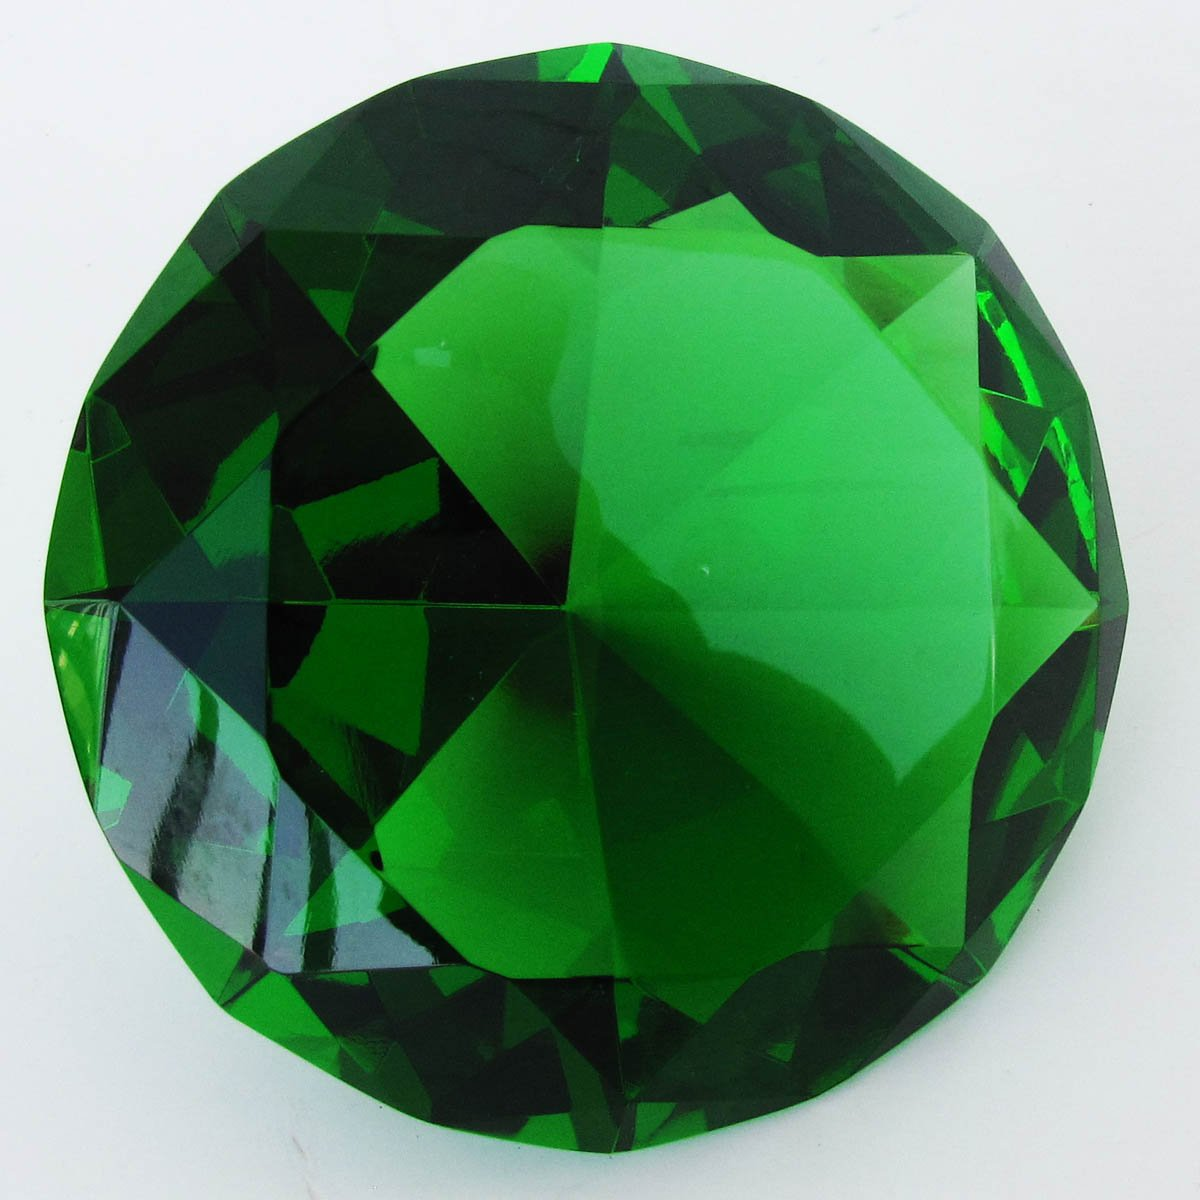 blooguy on diamond art deviantart green by emerald night